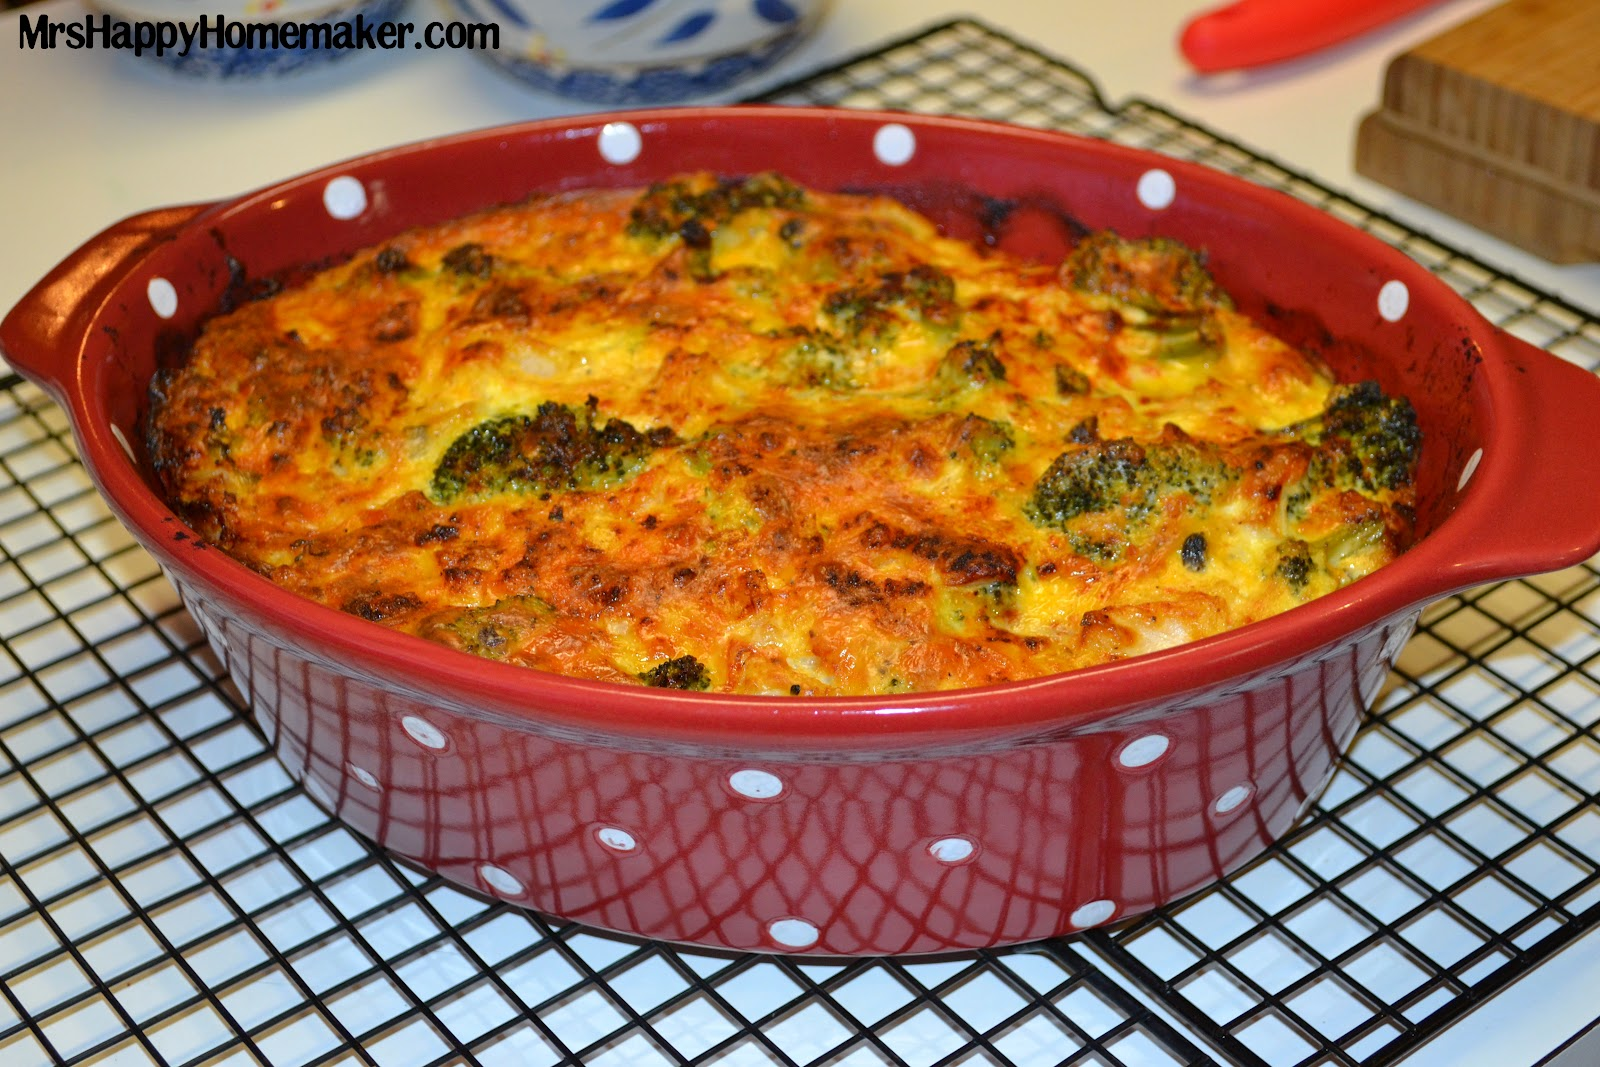 ... the recipe egg casserole with mushrooms bacon and herbed baked eggs